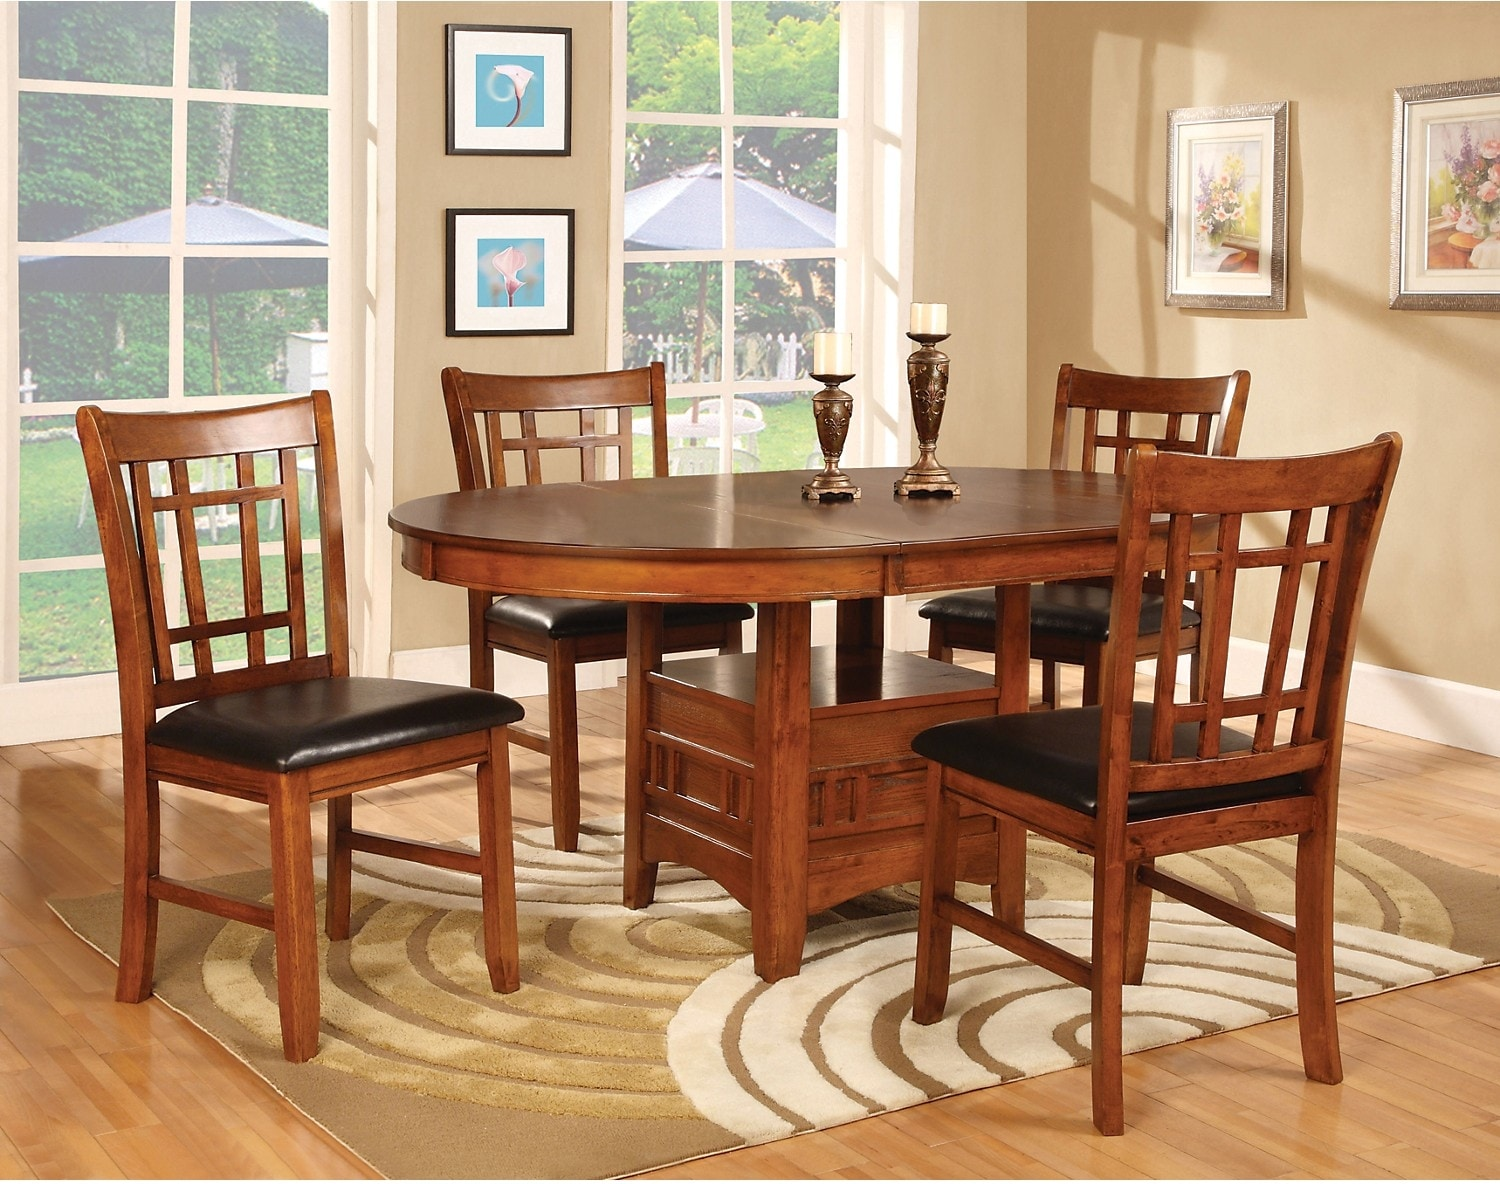 Dalton 7 piece dining package oak united furniture for Basic dining table